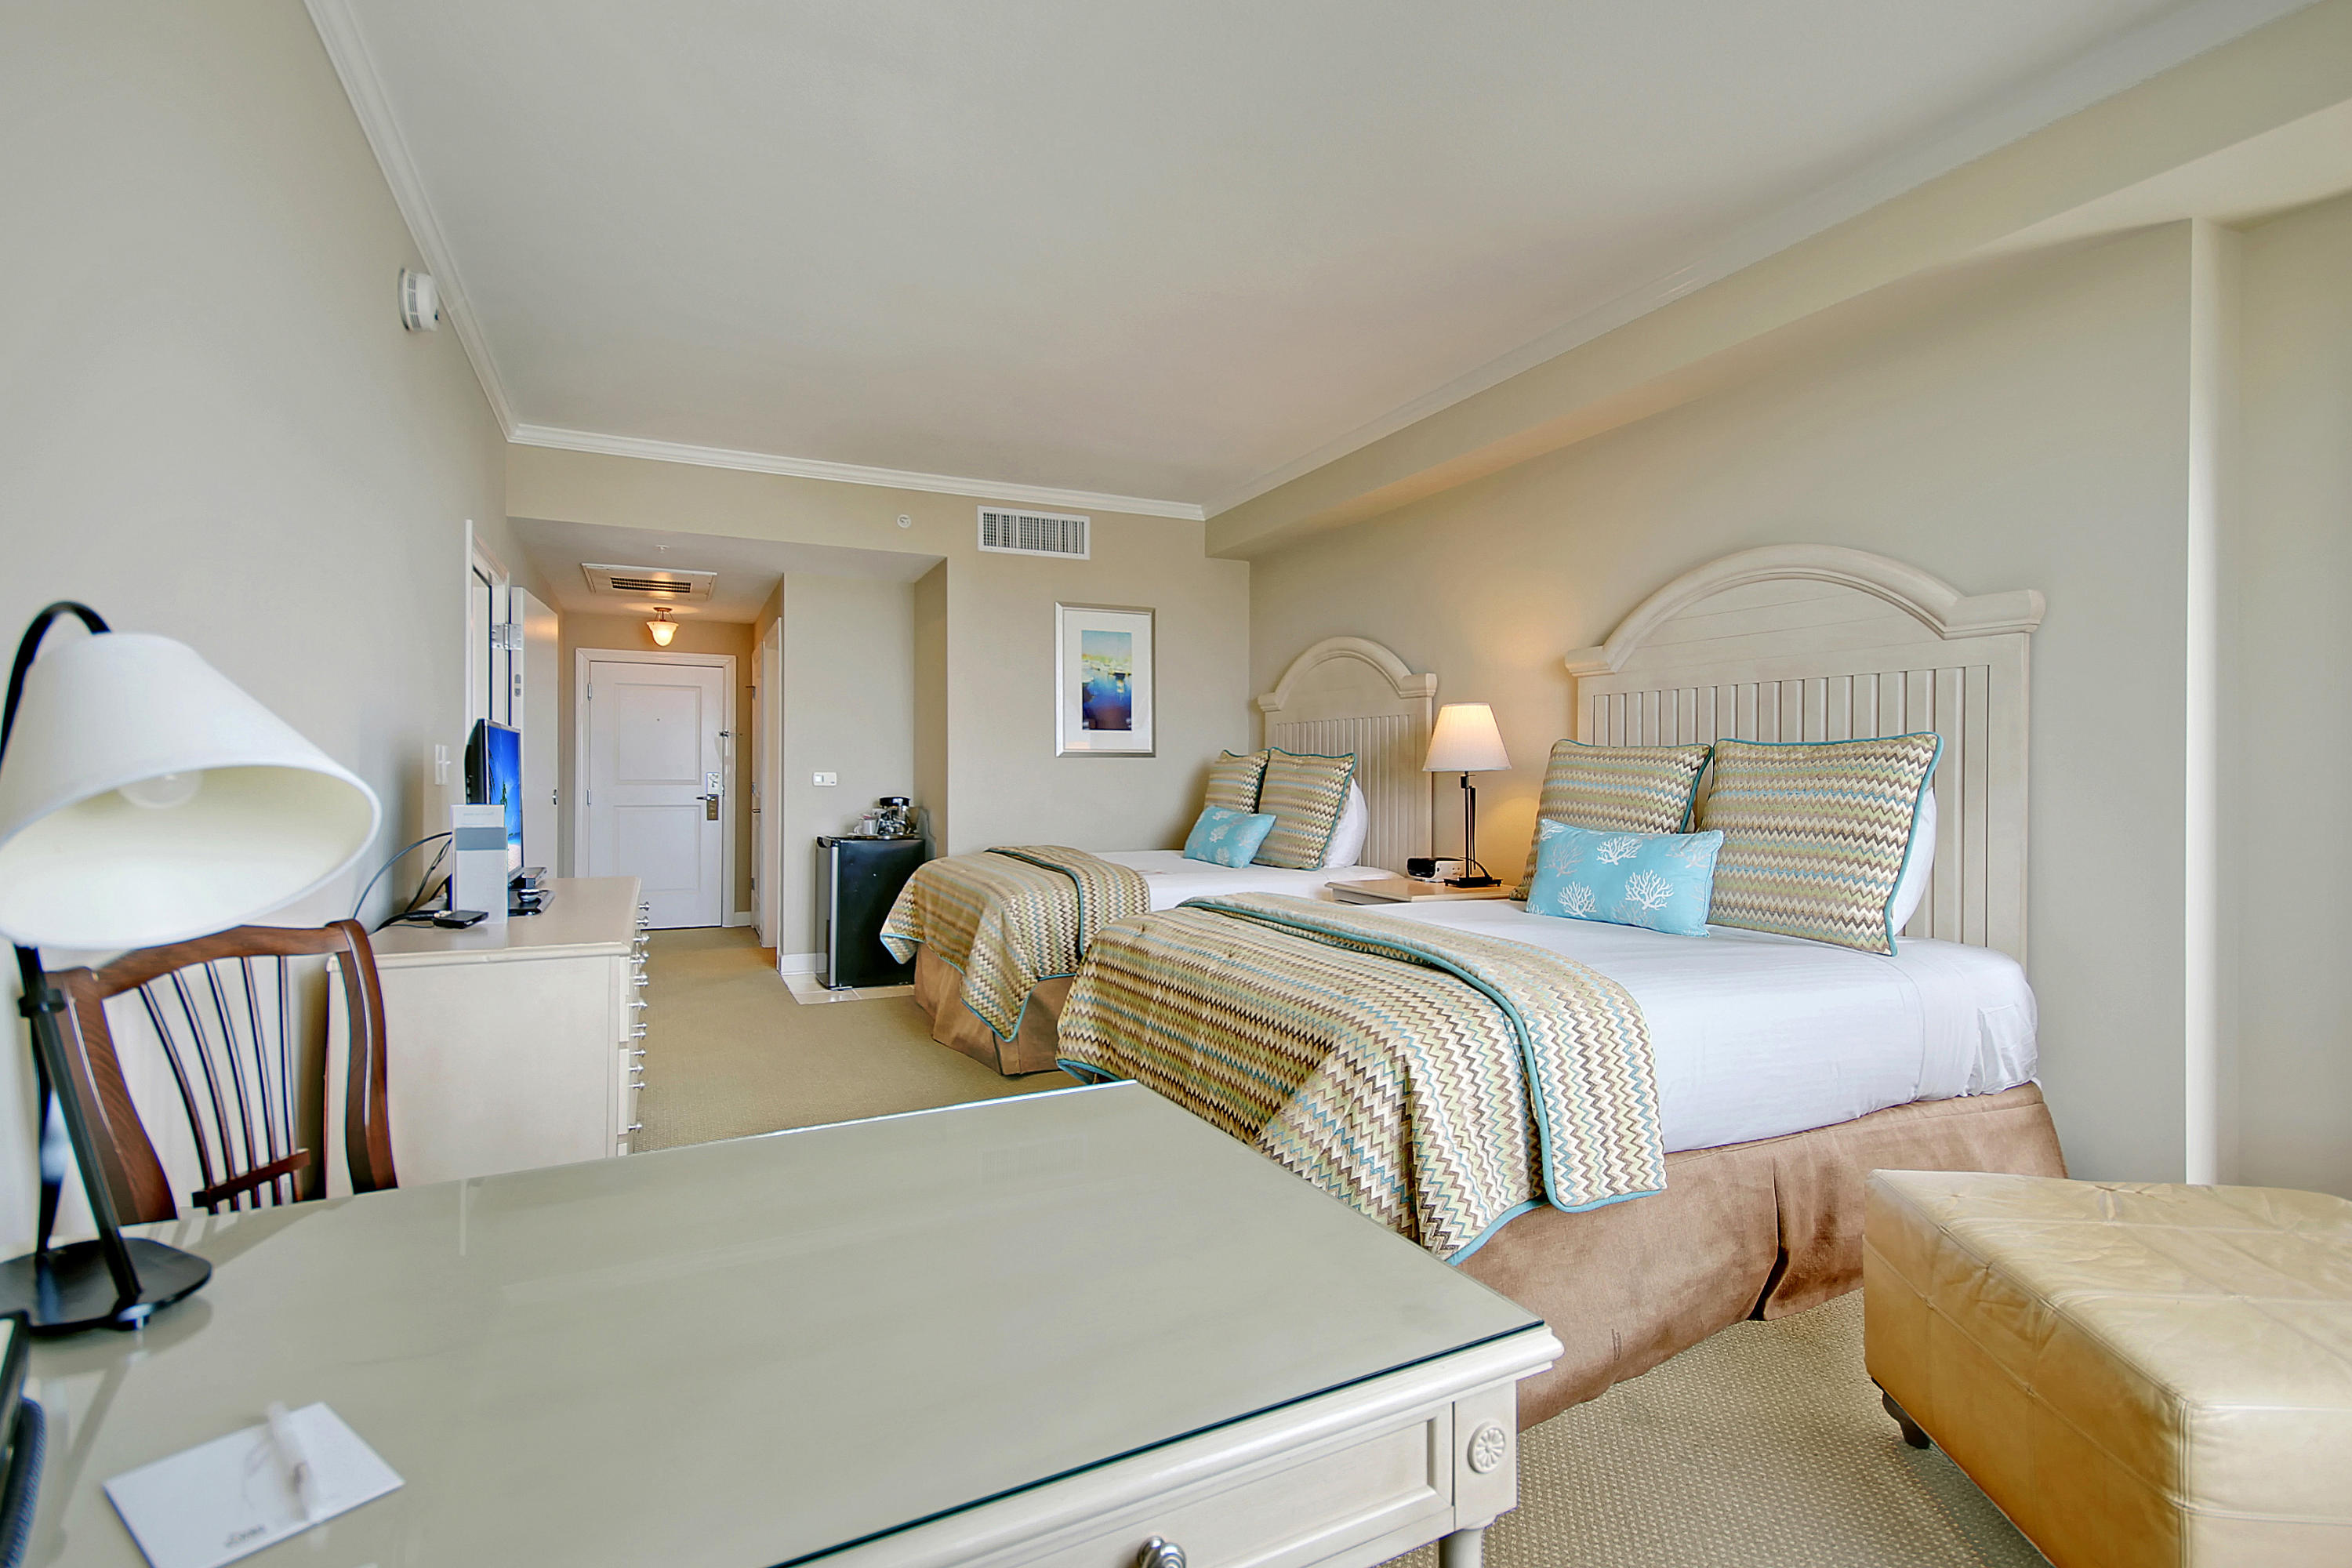 Wild Dunes Homes For Sale - 415/417-B The Village At Wild Dunes, Isle of Palms, SC - 17